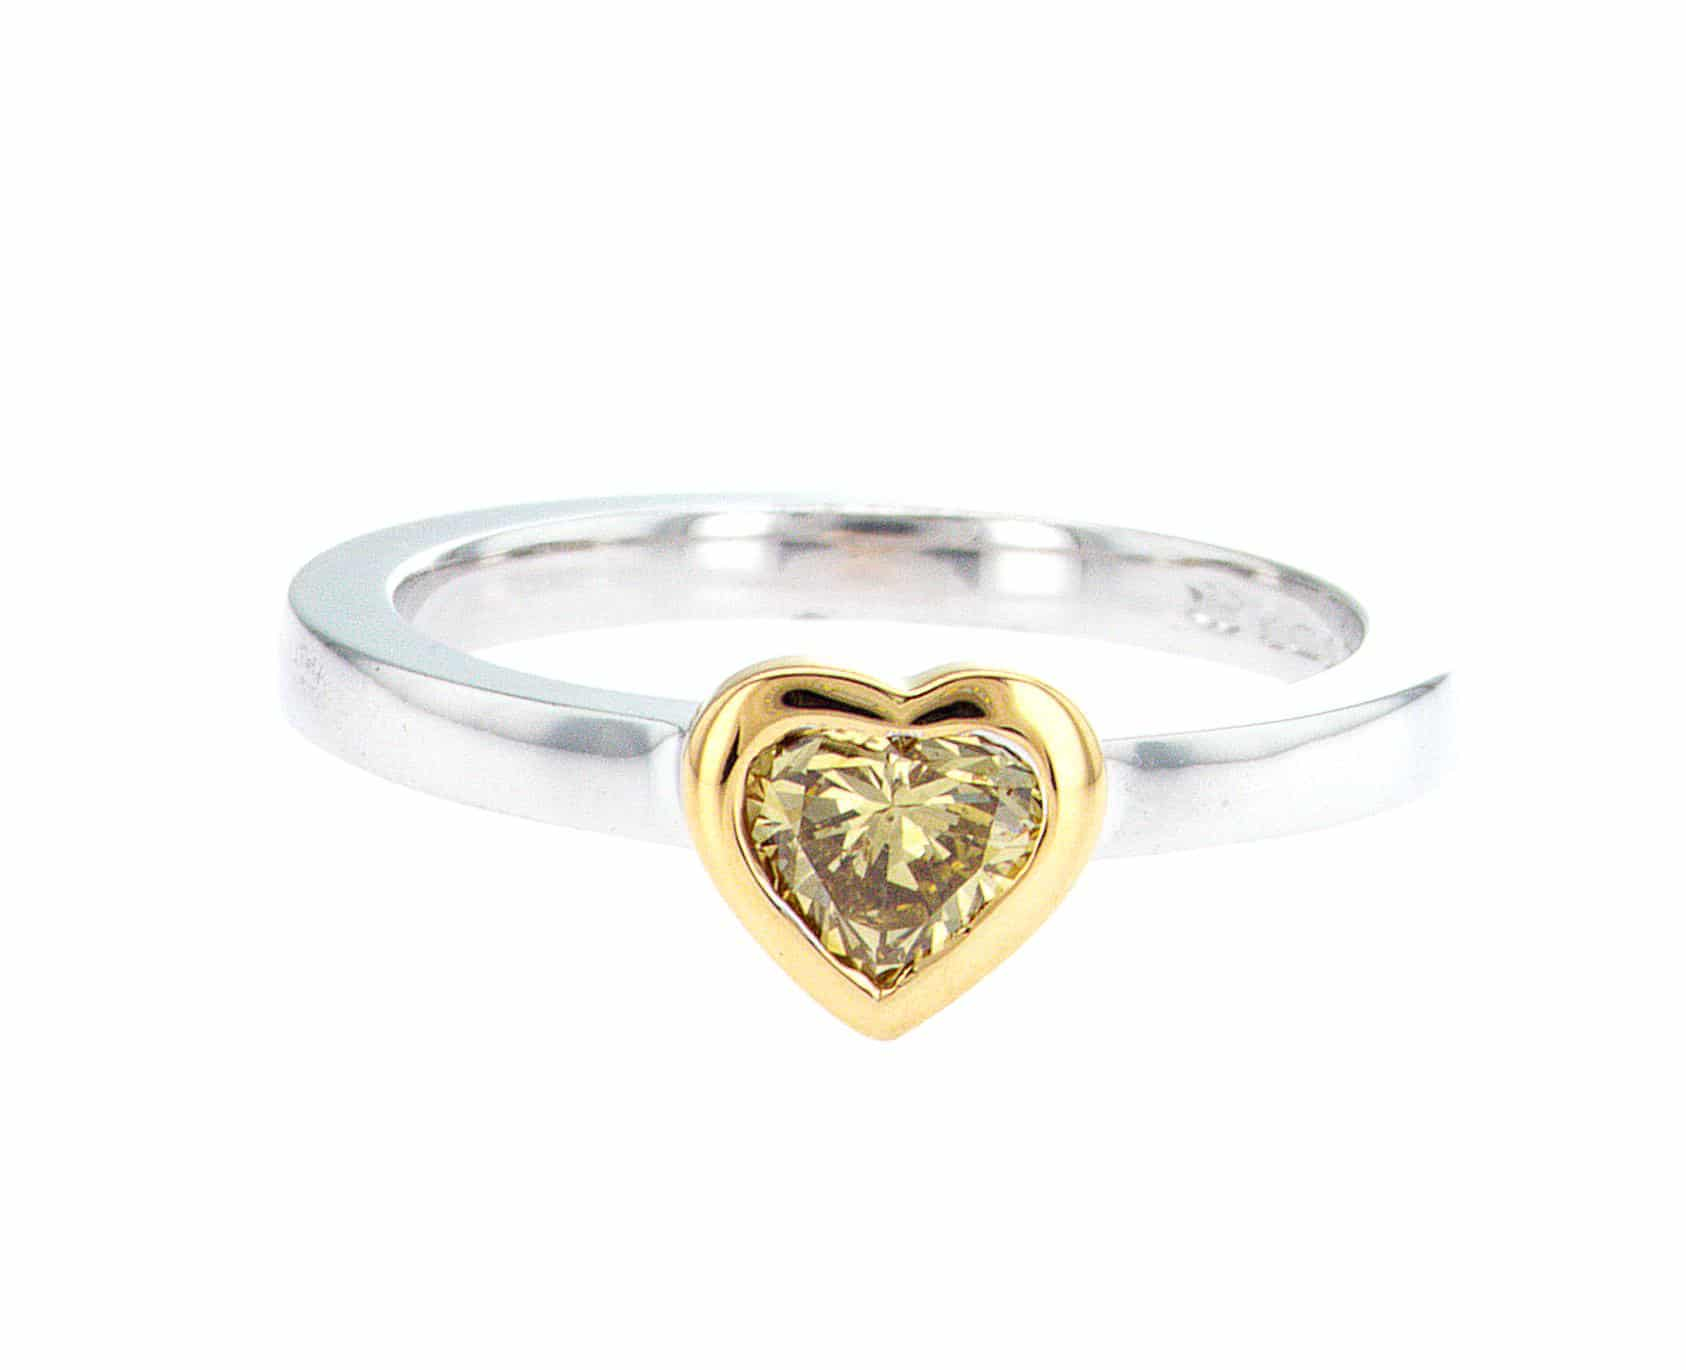 olive heart shape diamond, white and yellow gold stacking ring